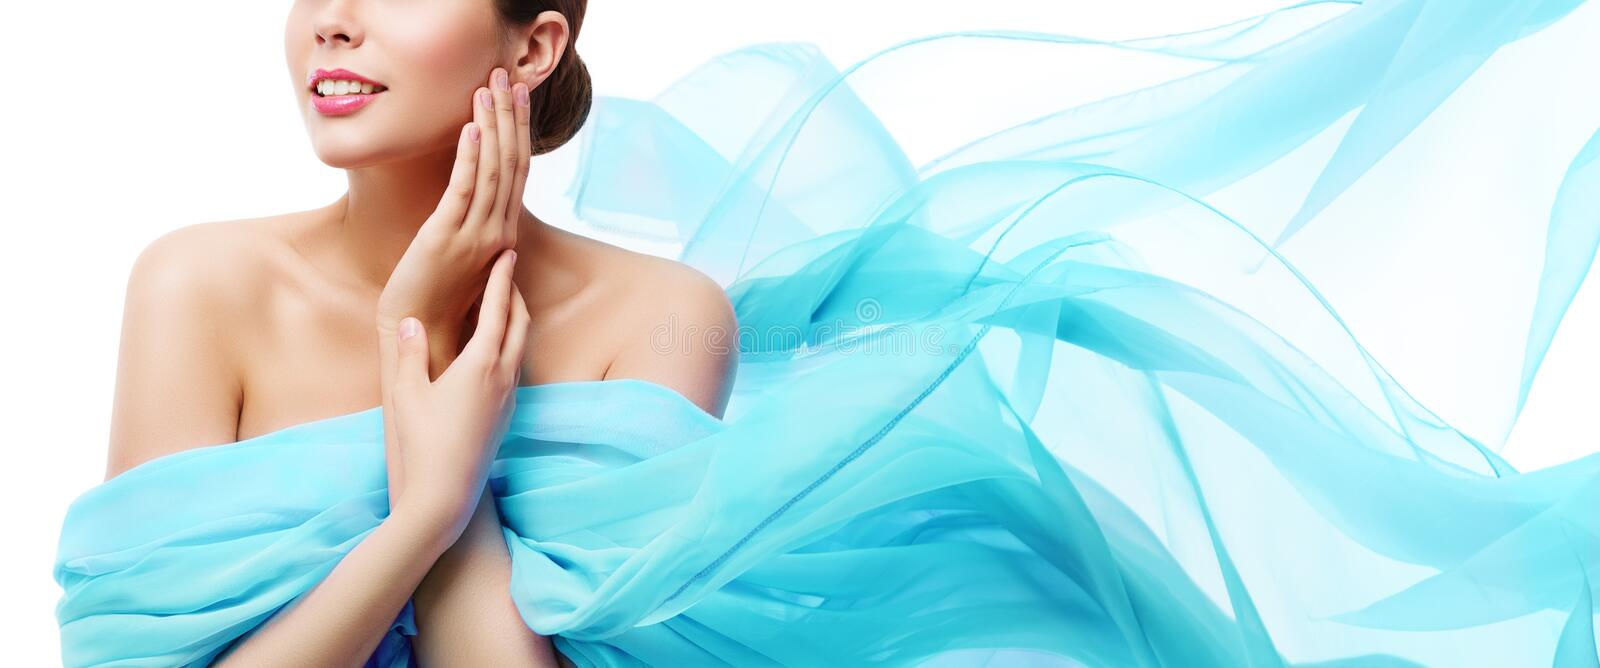 Beauty Makeup Skin Care, Woman Touching Face by Hand, Young Girl in Blue Waving Cloth. Over White background royalty free stock photos